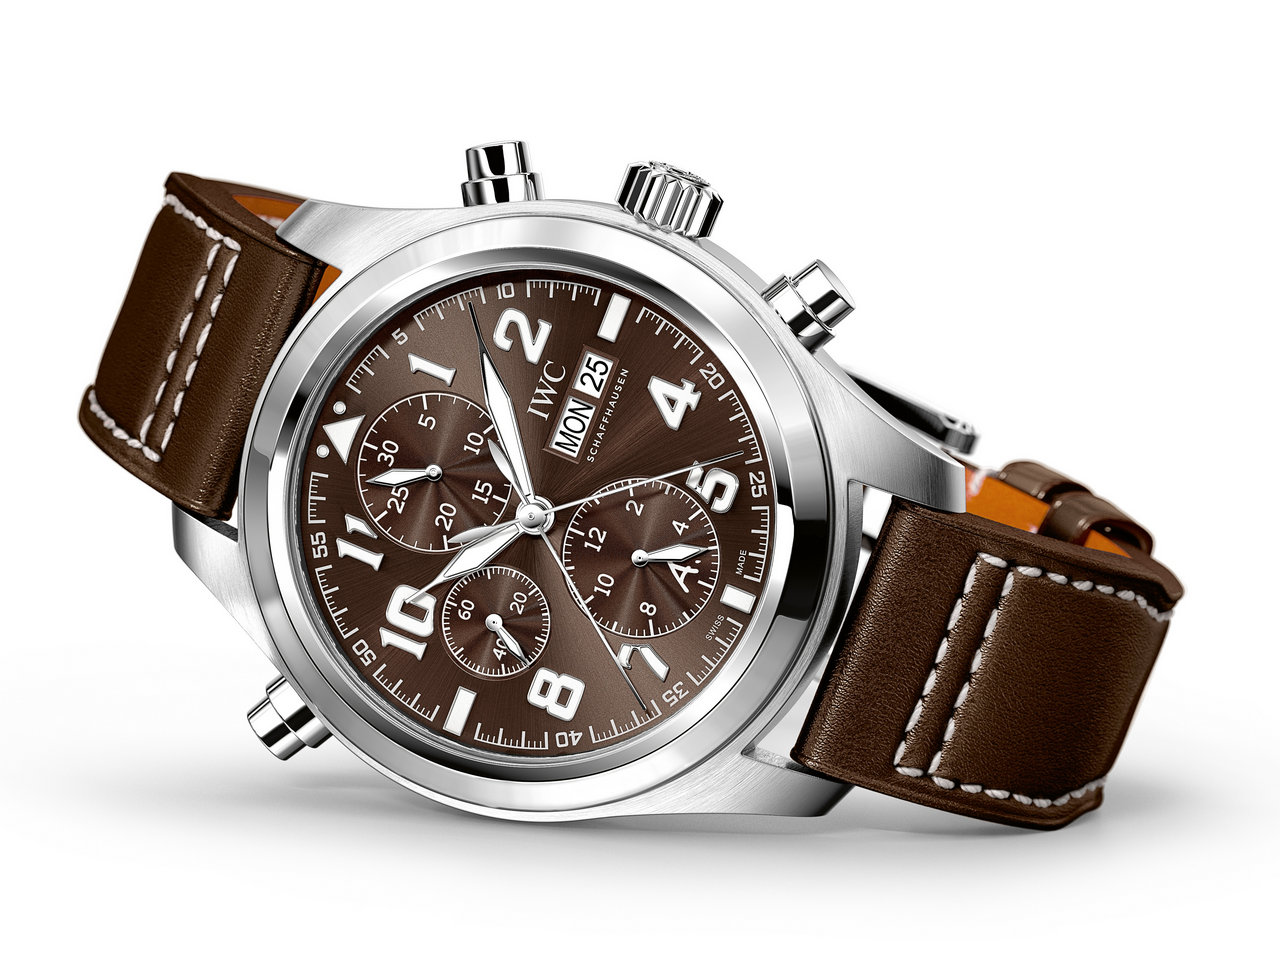 SIHH-2016-IWC-Pilot-Watch-Double-Chronograph-Edition-Antoine-de-Saint-Exupéry-IW371808-0-100_13